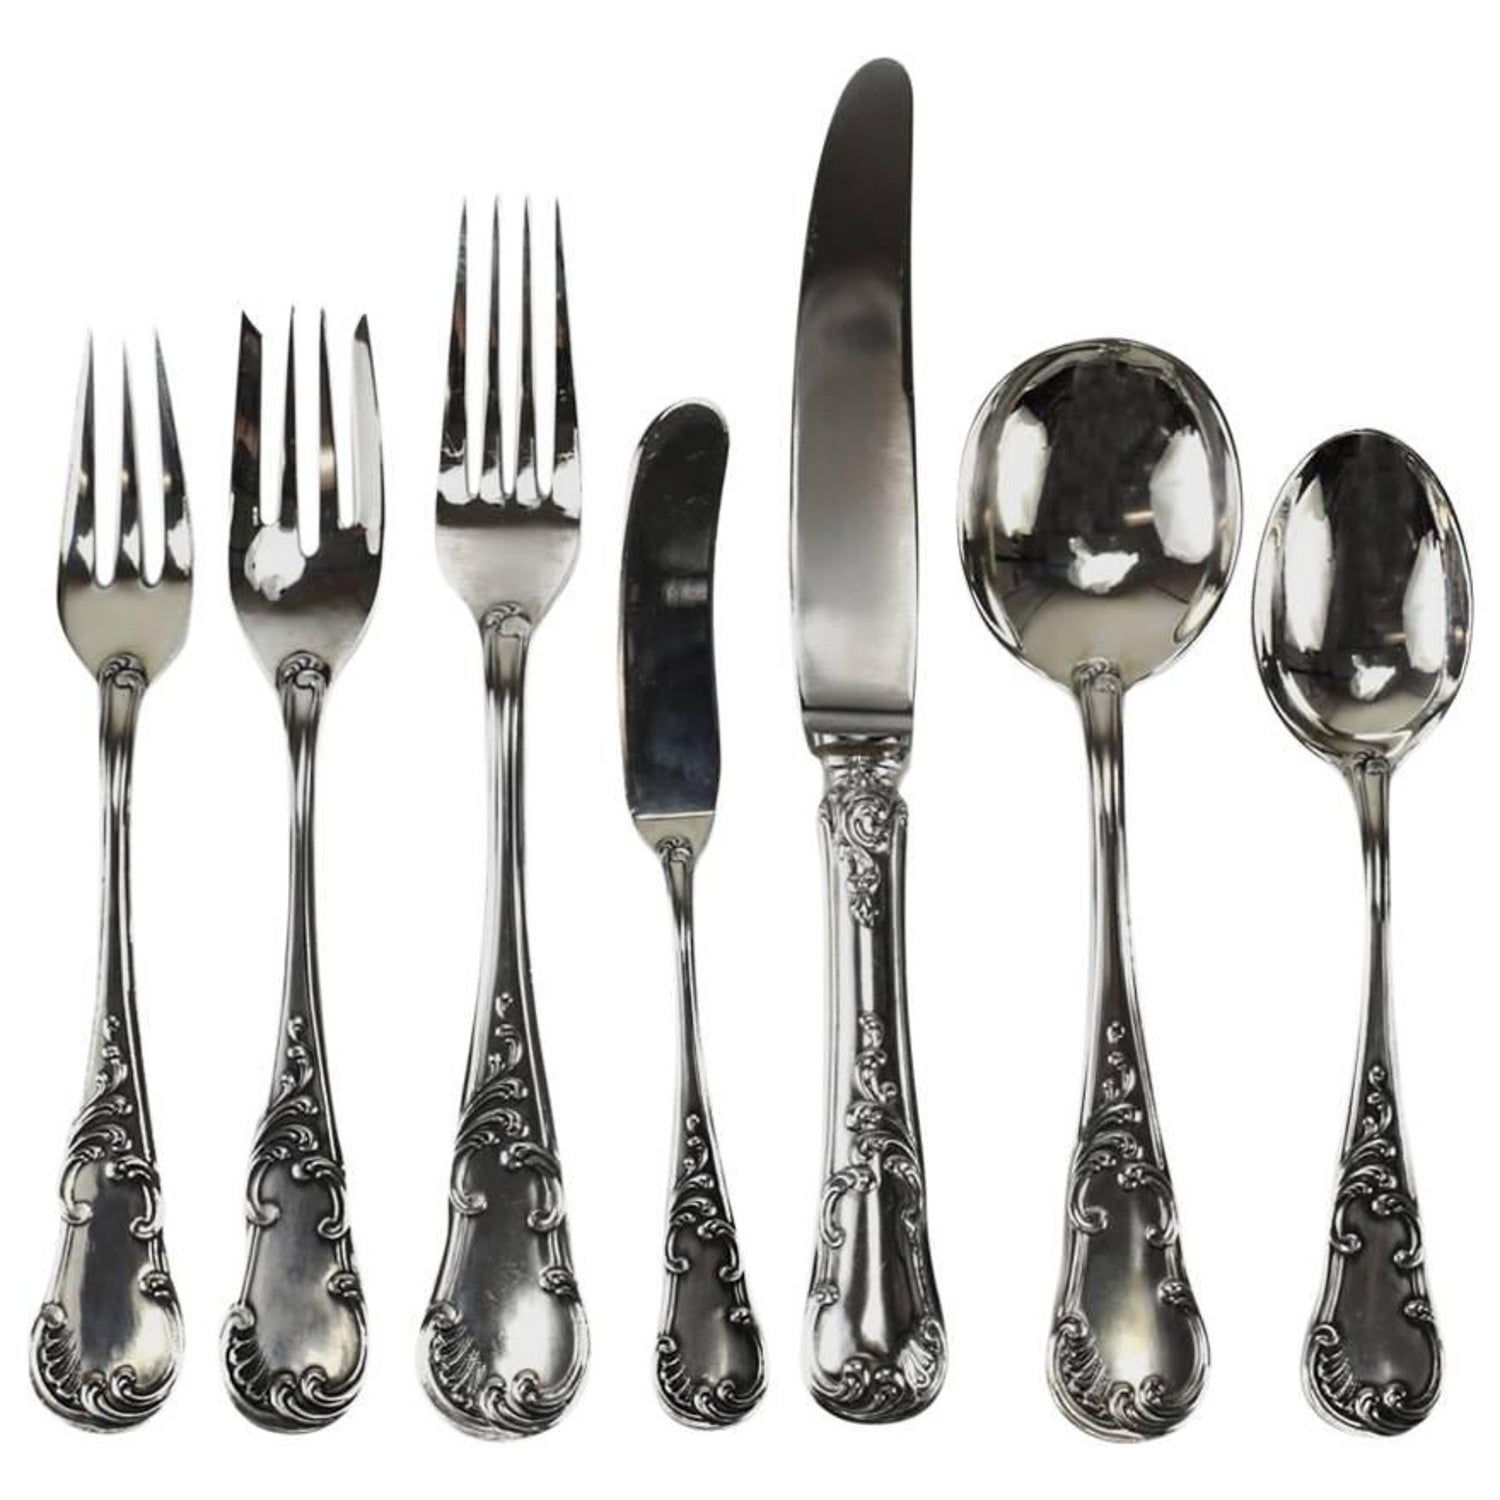 97ddc4db51eb0 Seven-Piece Sterling Silver Flatware Service for 12 in Quirinale by  Buccellati For Sale at 1stdibs